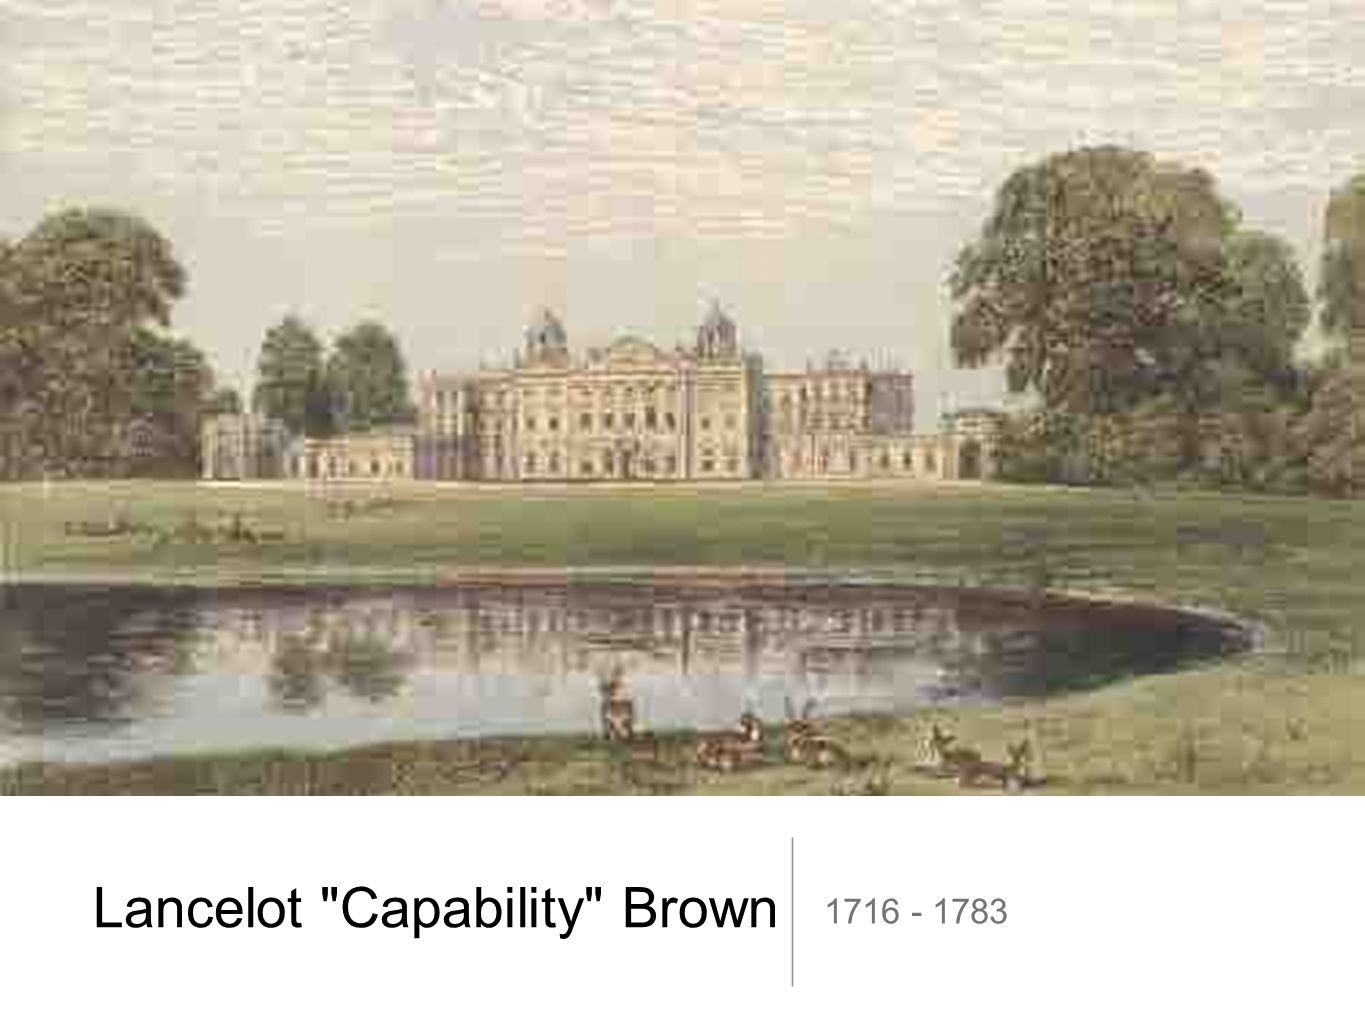 Biography Lancelot Brown was born in 1716 in Kirkharle, Northumberland.